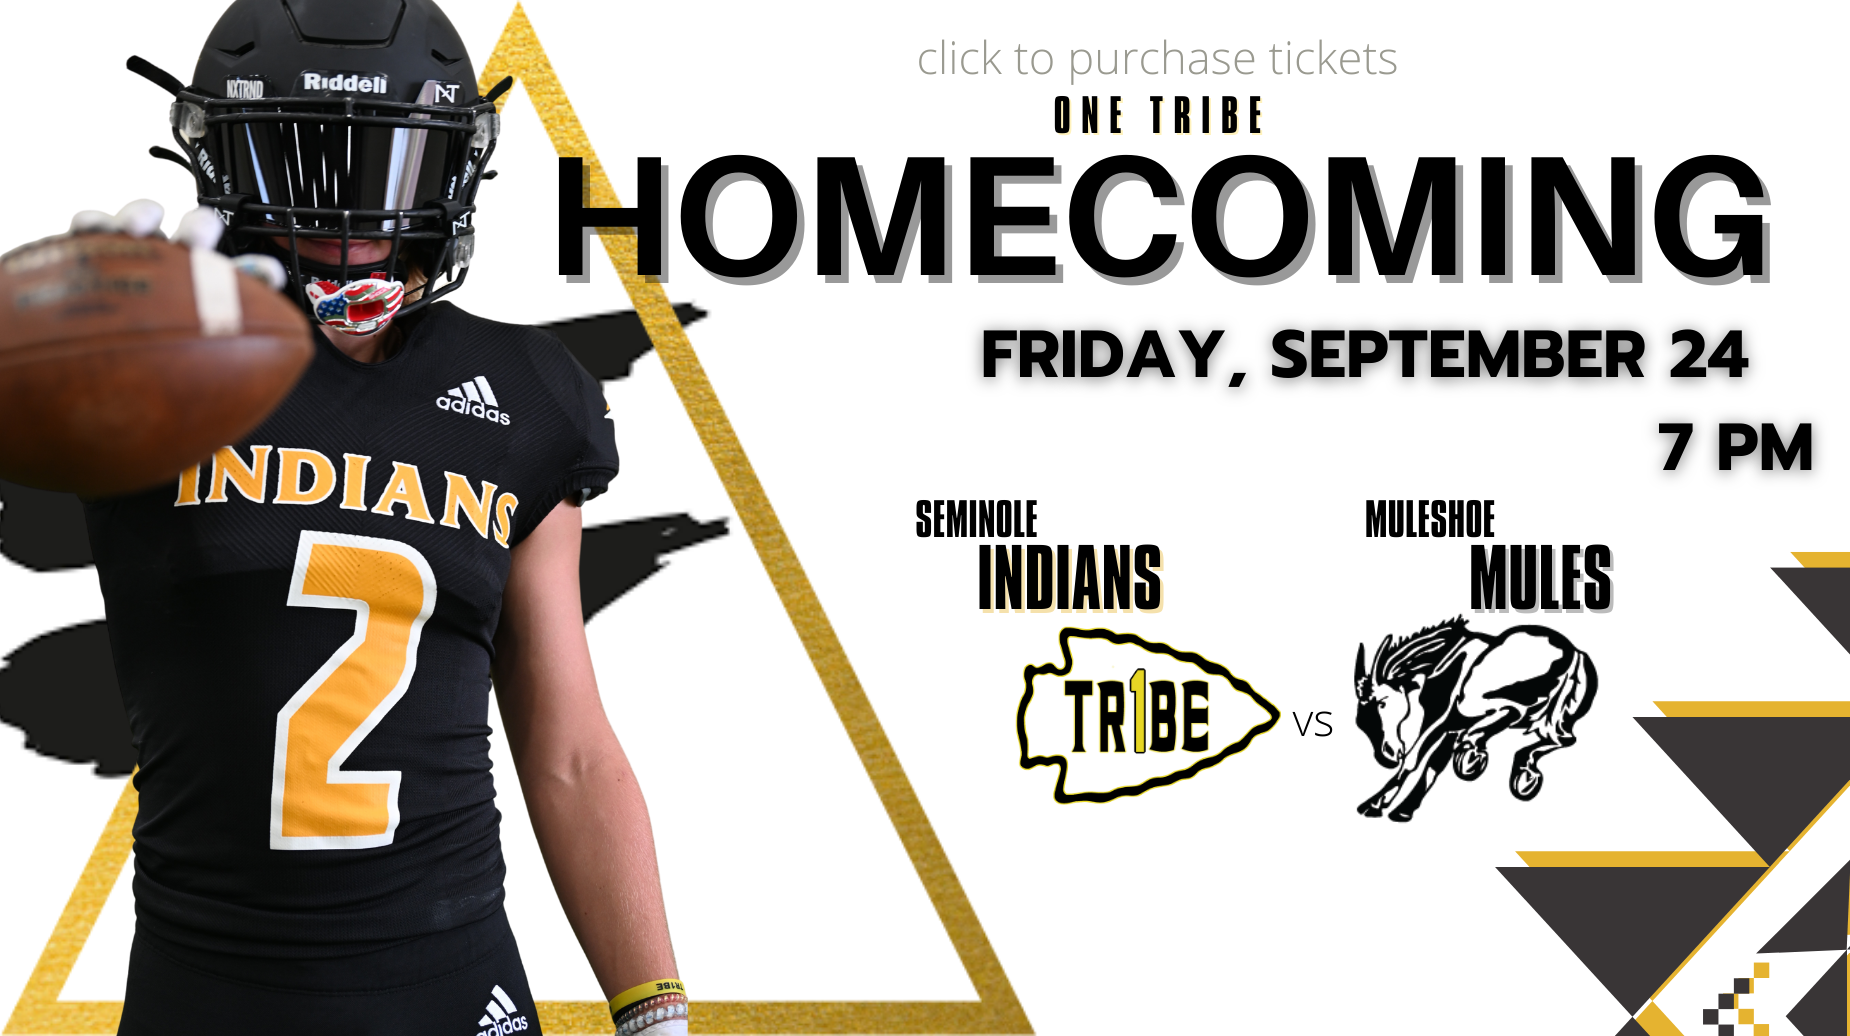 homecoming graphic for tickets link